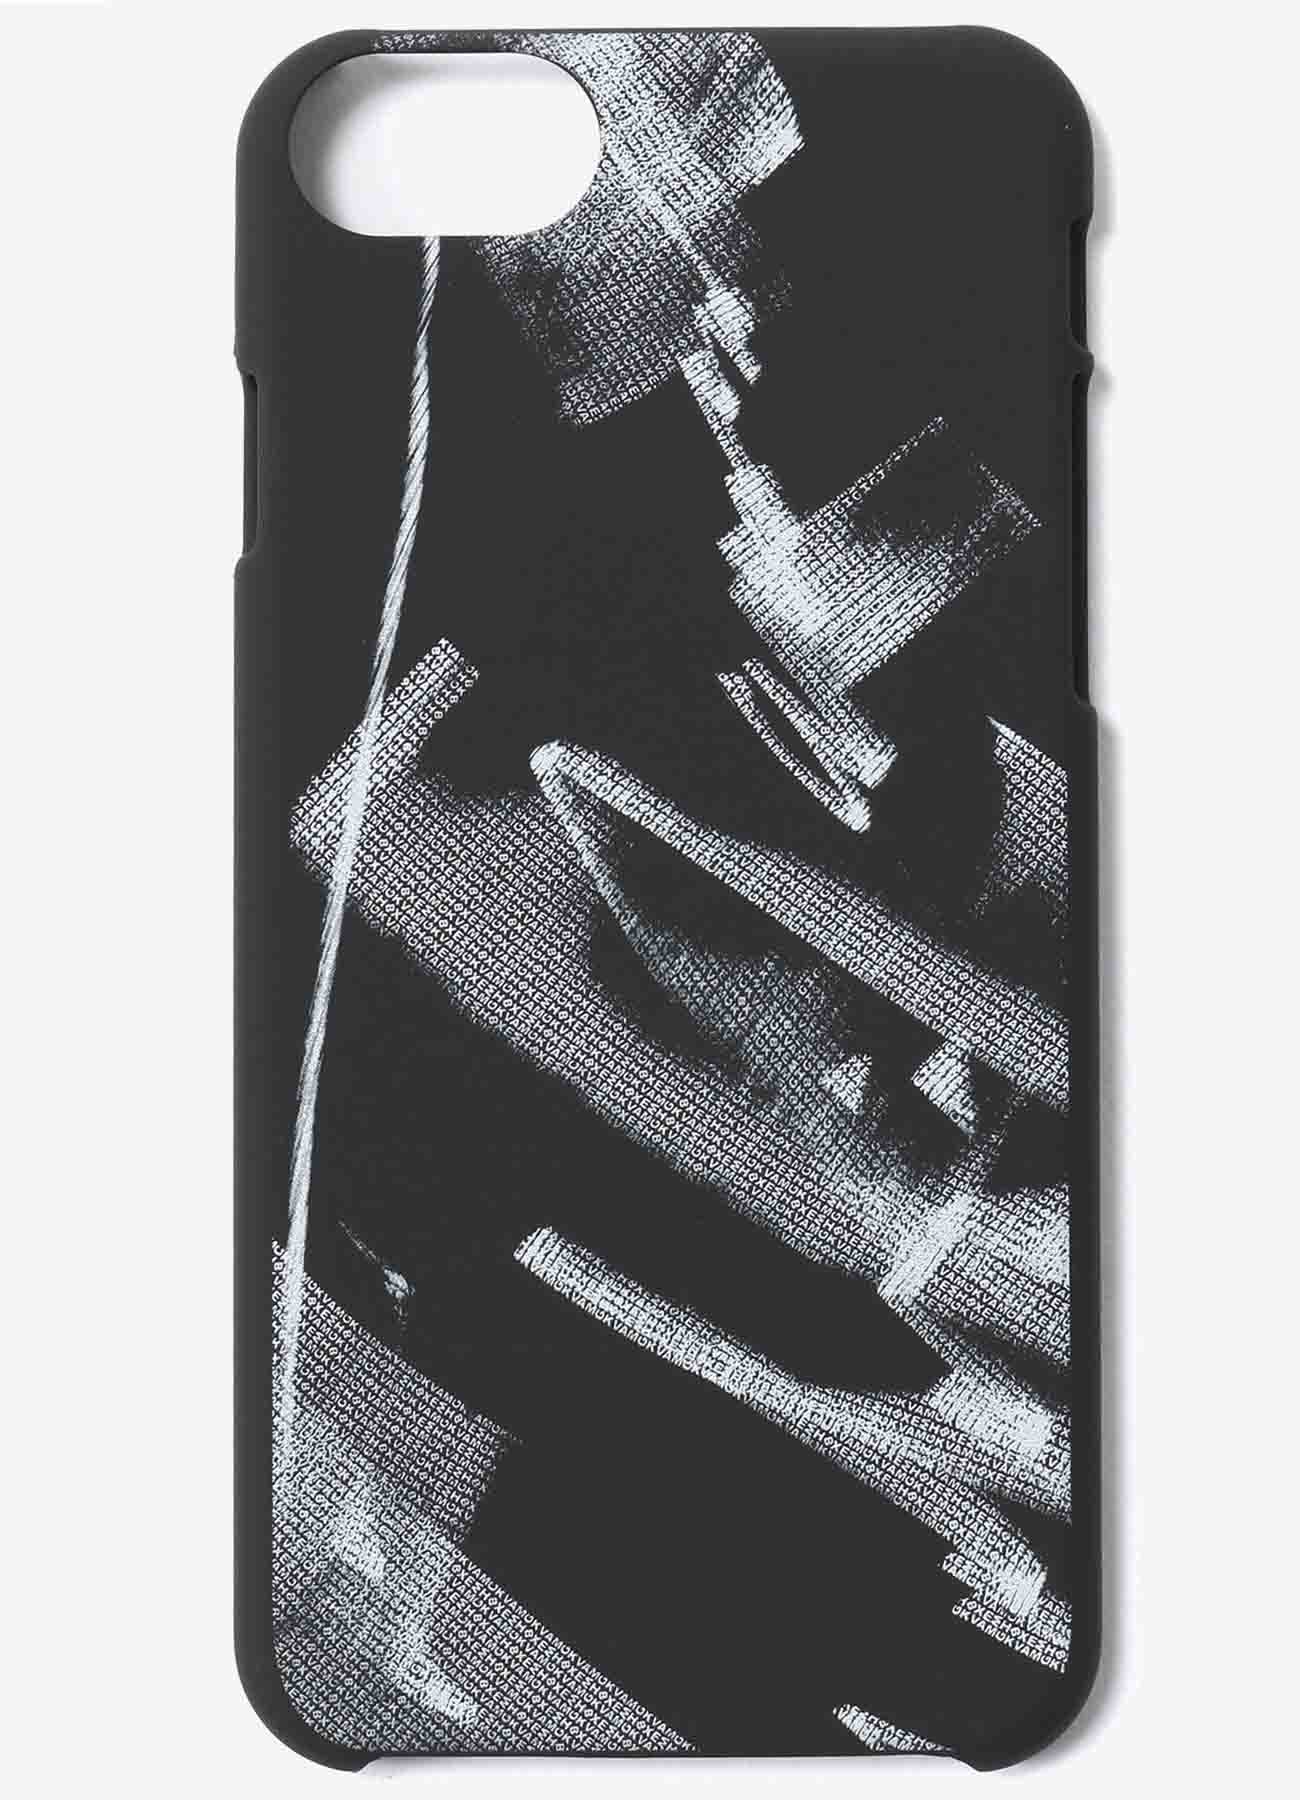 iPhone 8 Case Roller Sketch Graphic